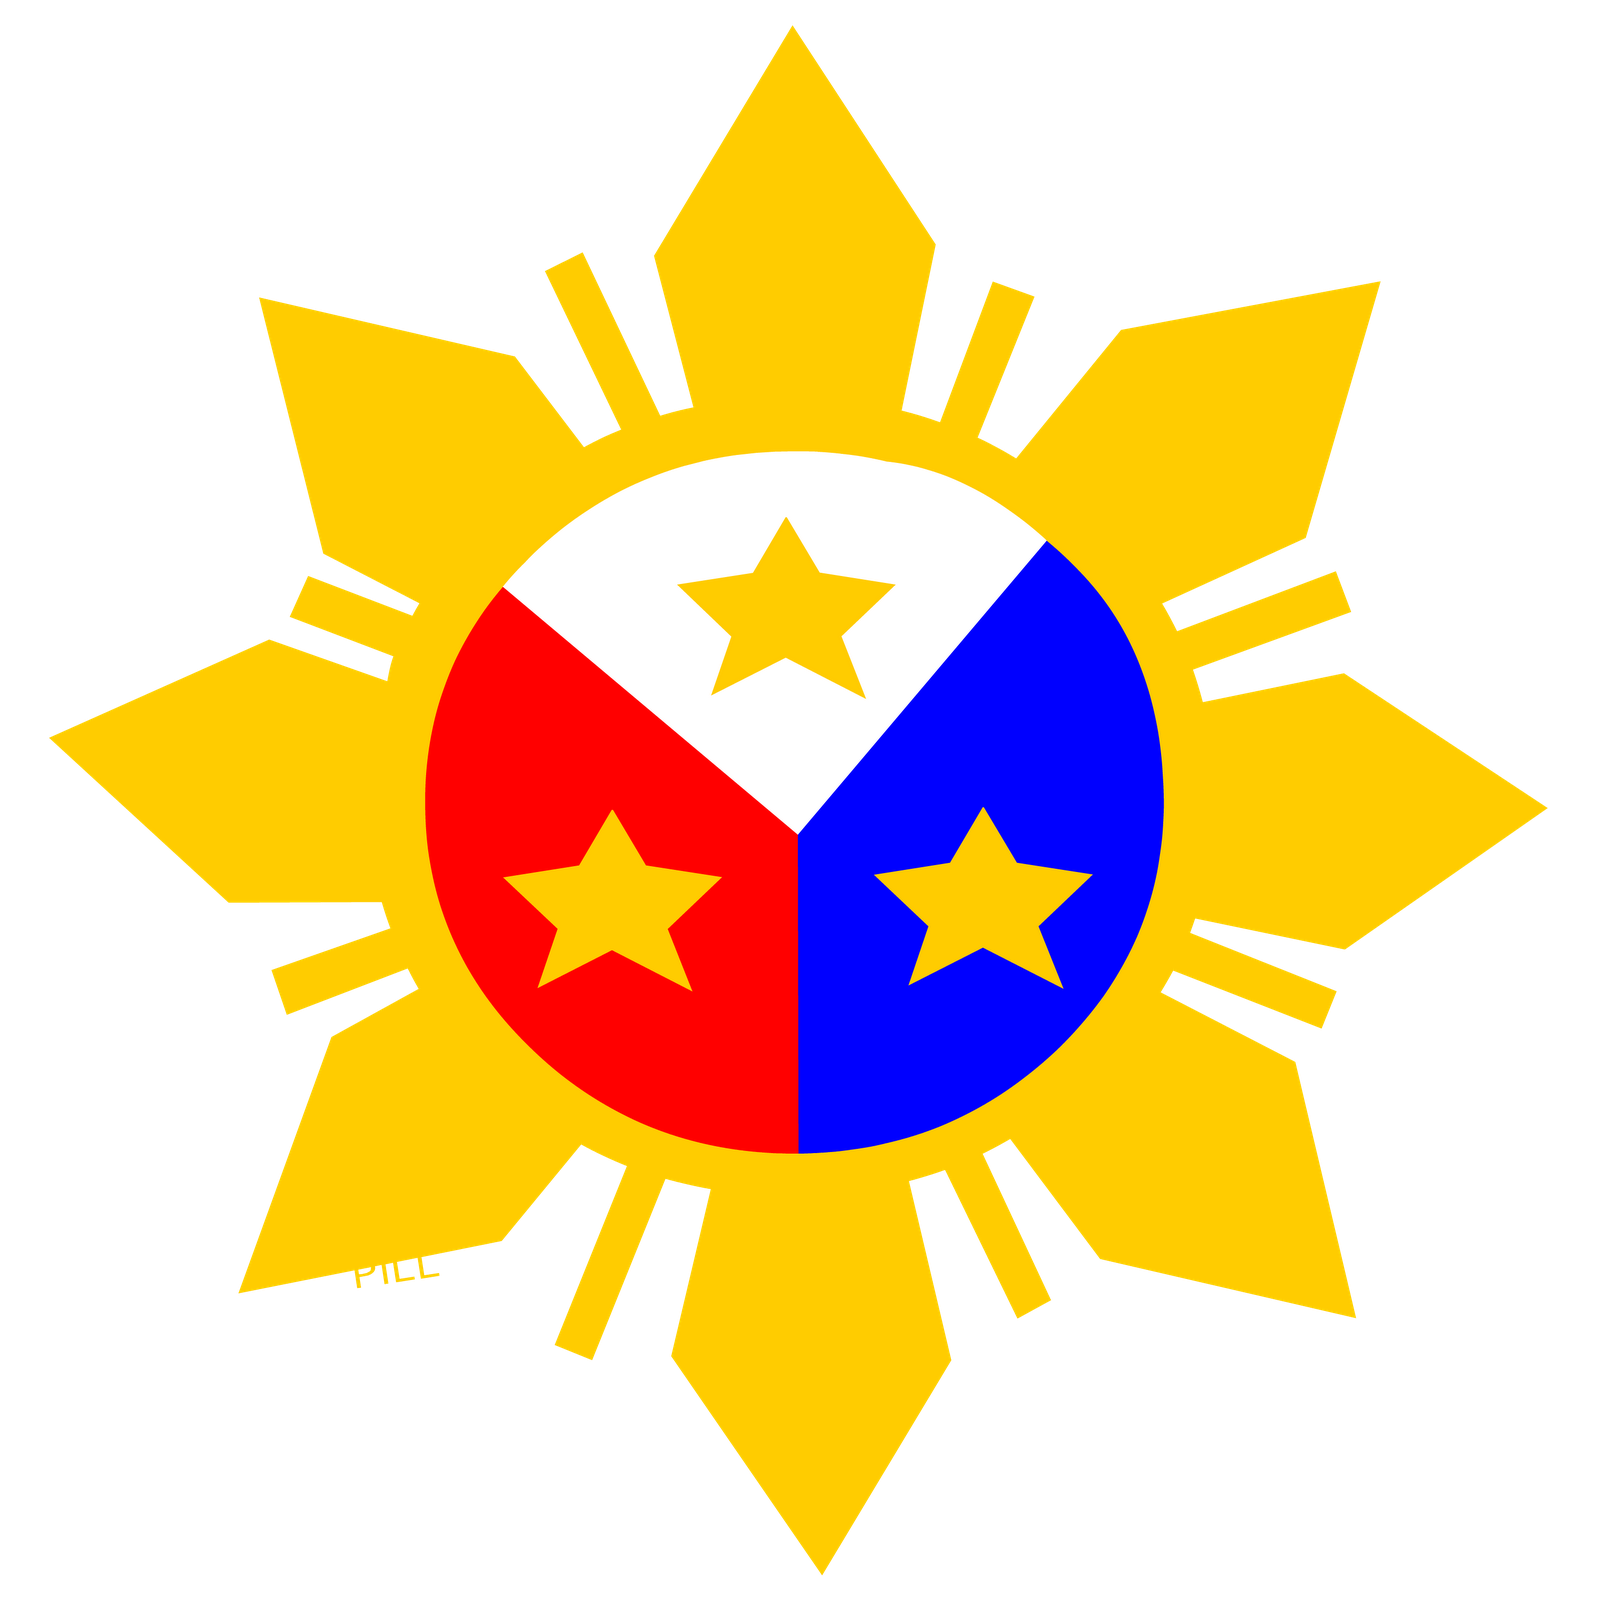 Filipino drawing sun. Collection of high